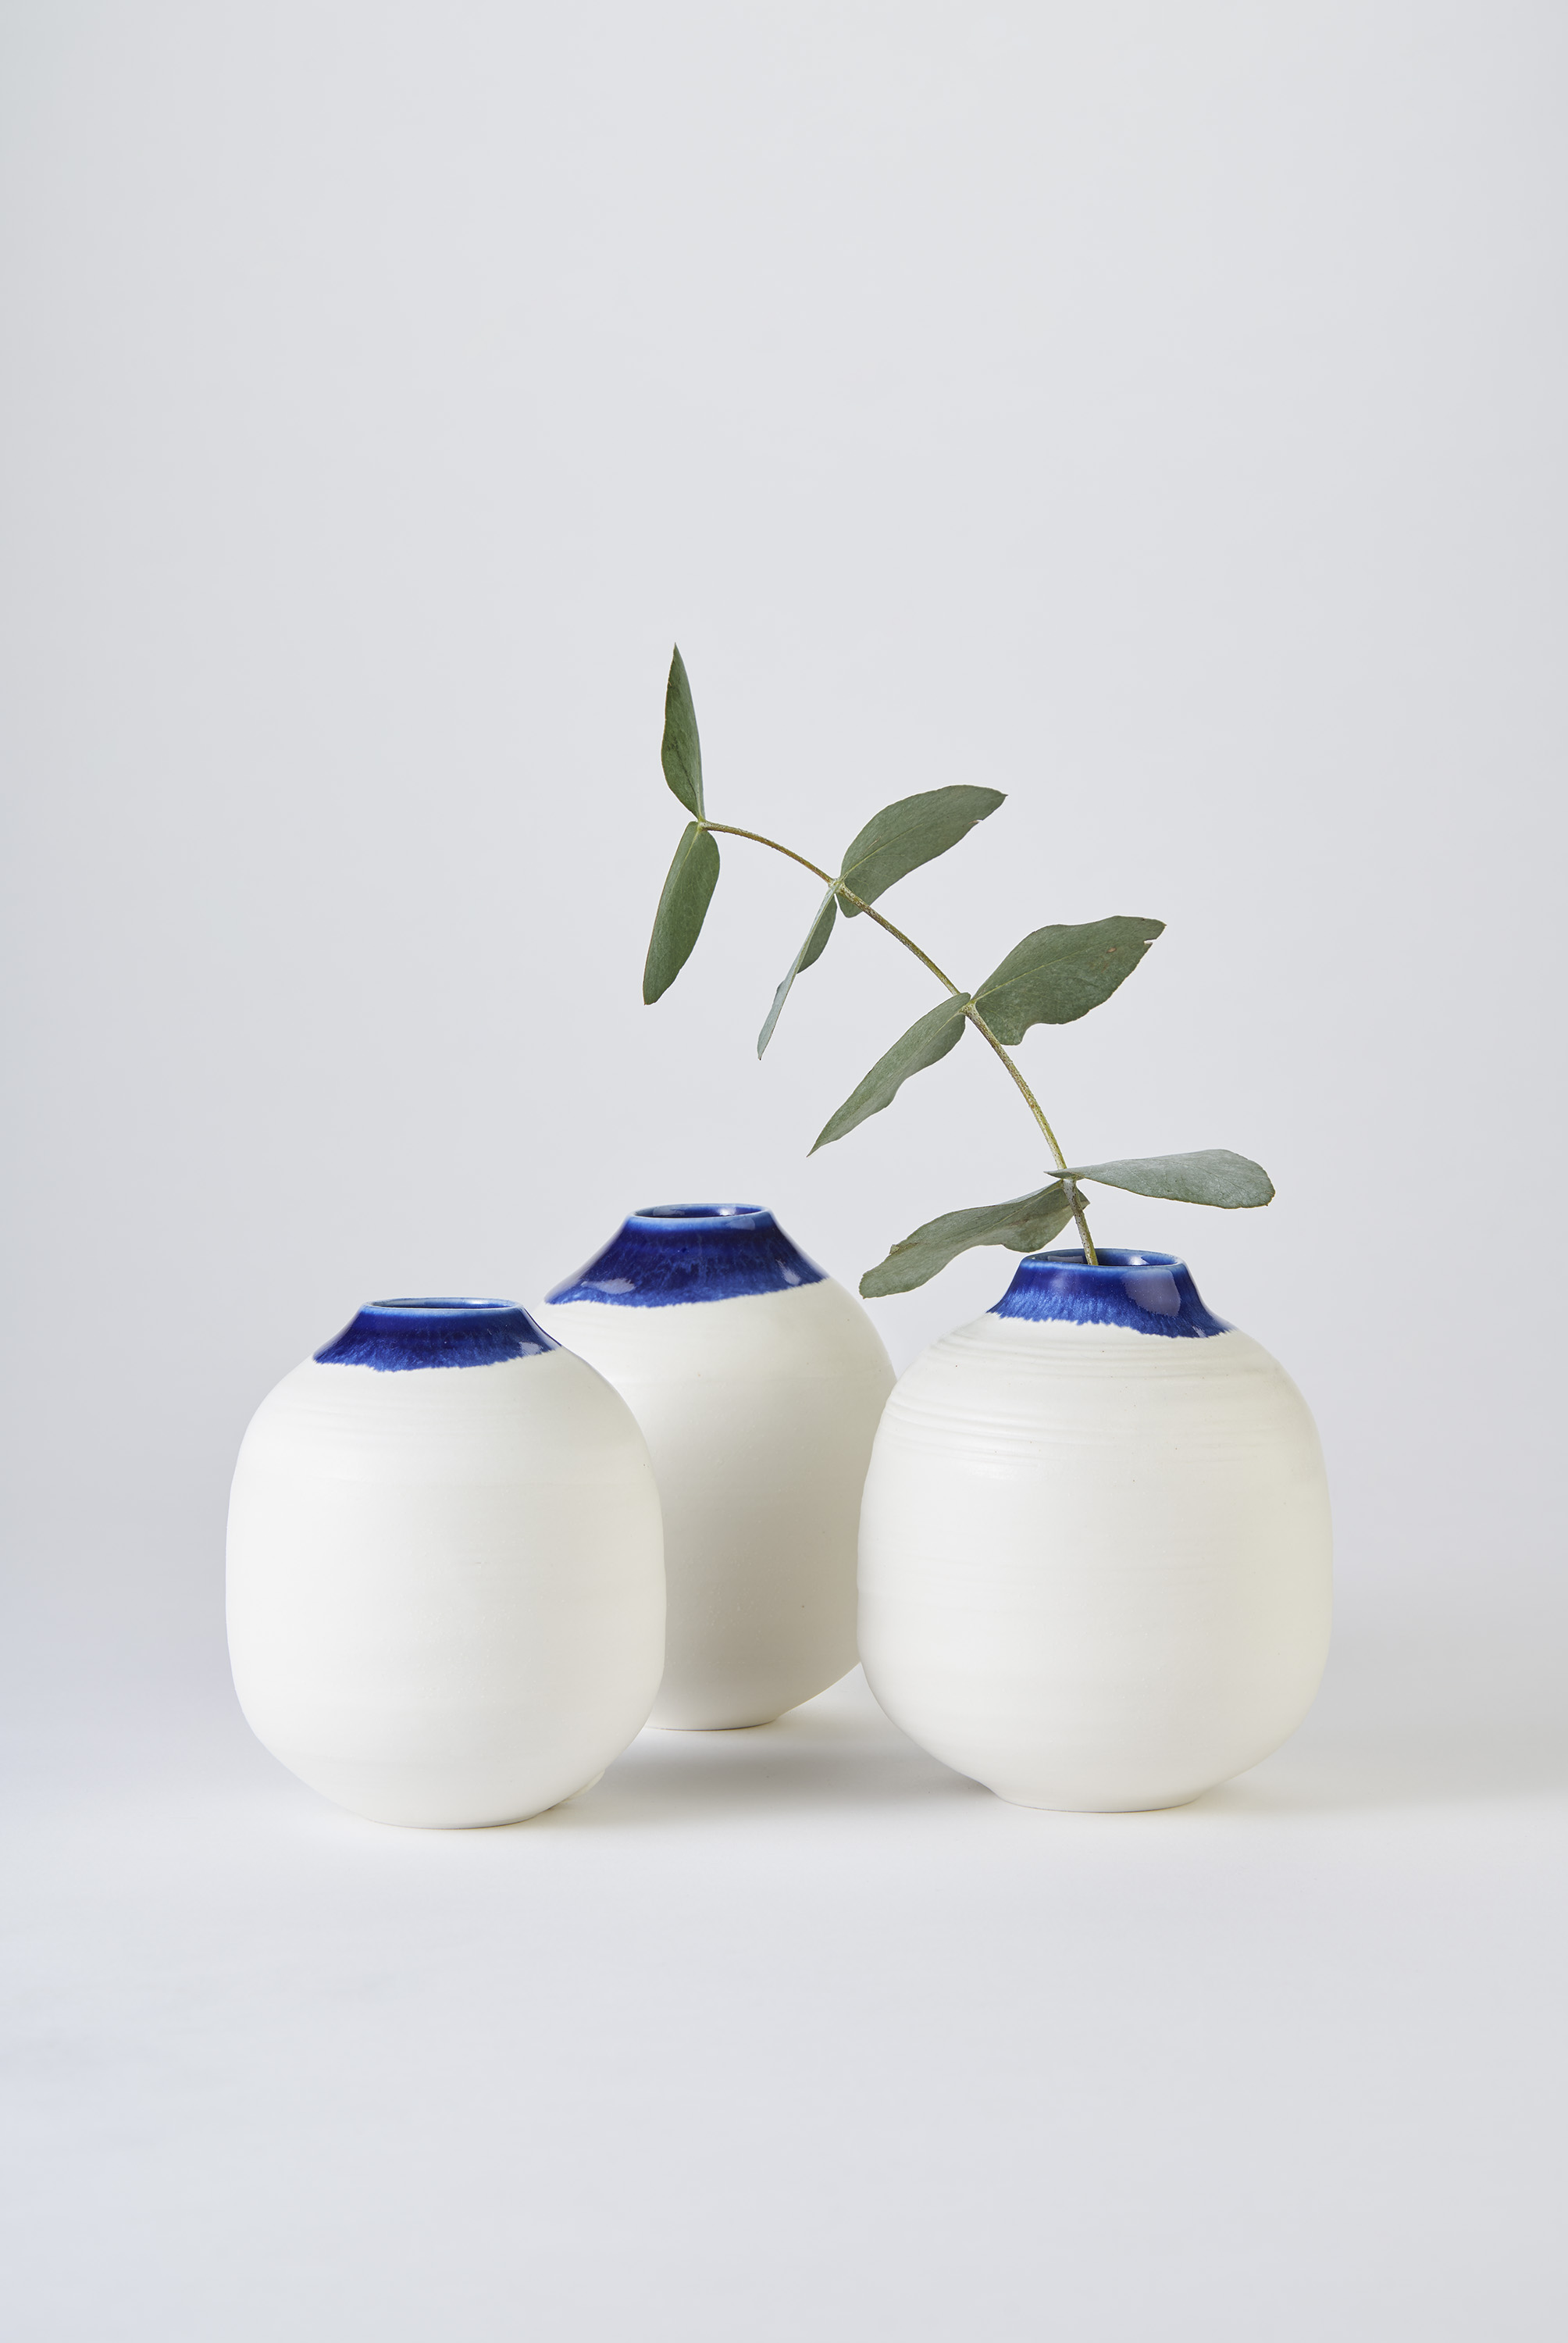 KA Ceramics Porcelain small moon jars with blue inside and blue:dol and tin on rim 3cm x 11cm. Matthew Booth Photography 1.jpg